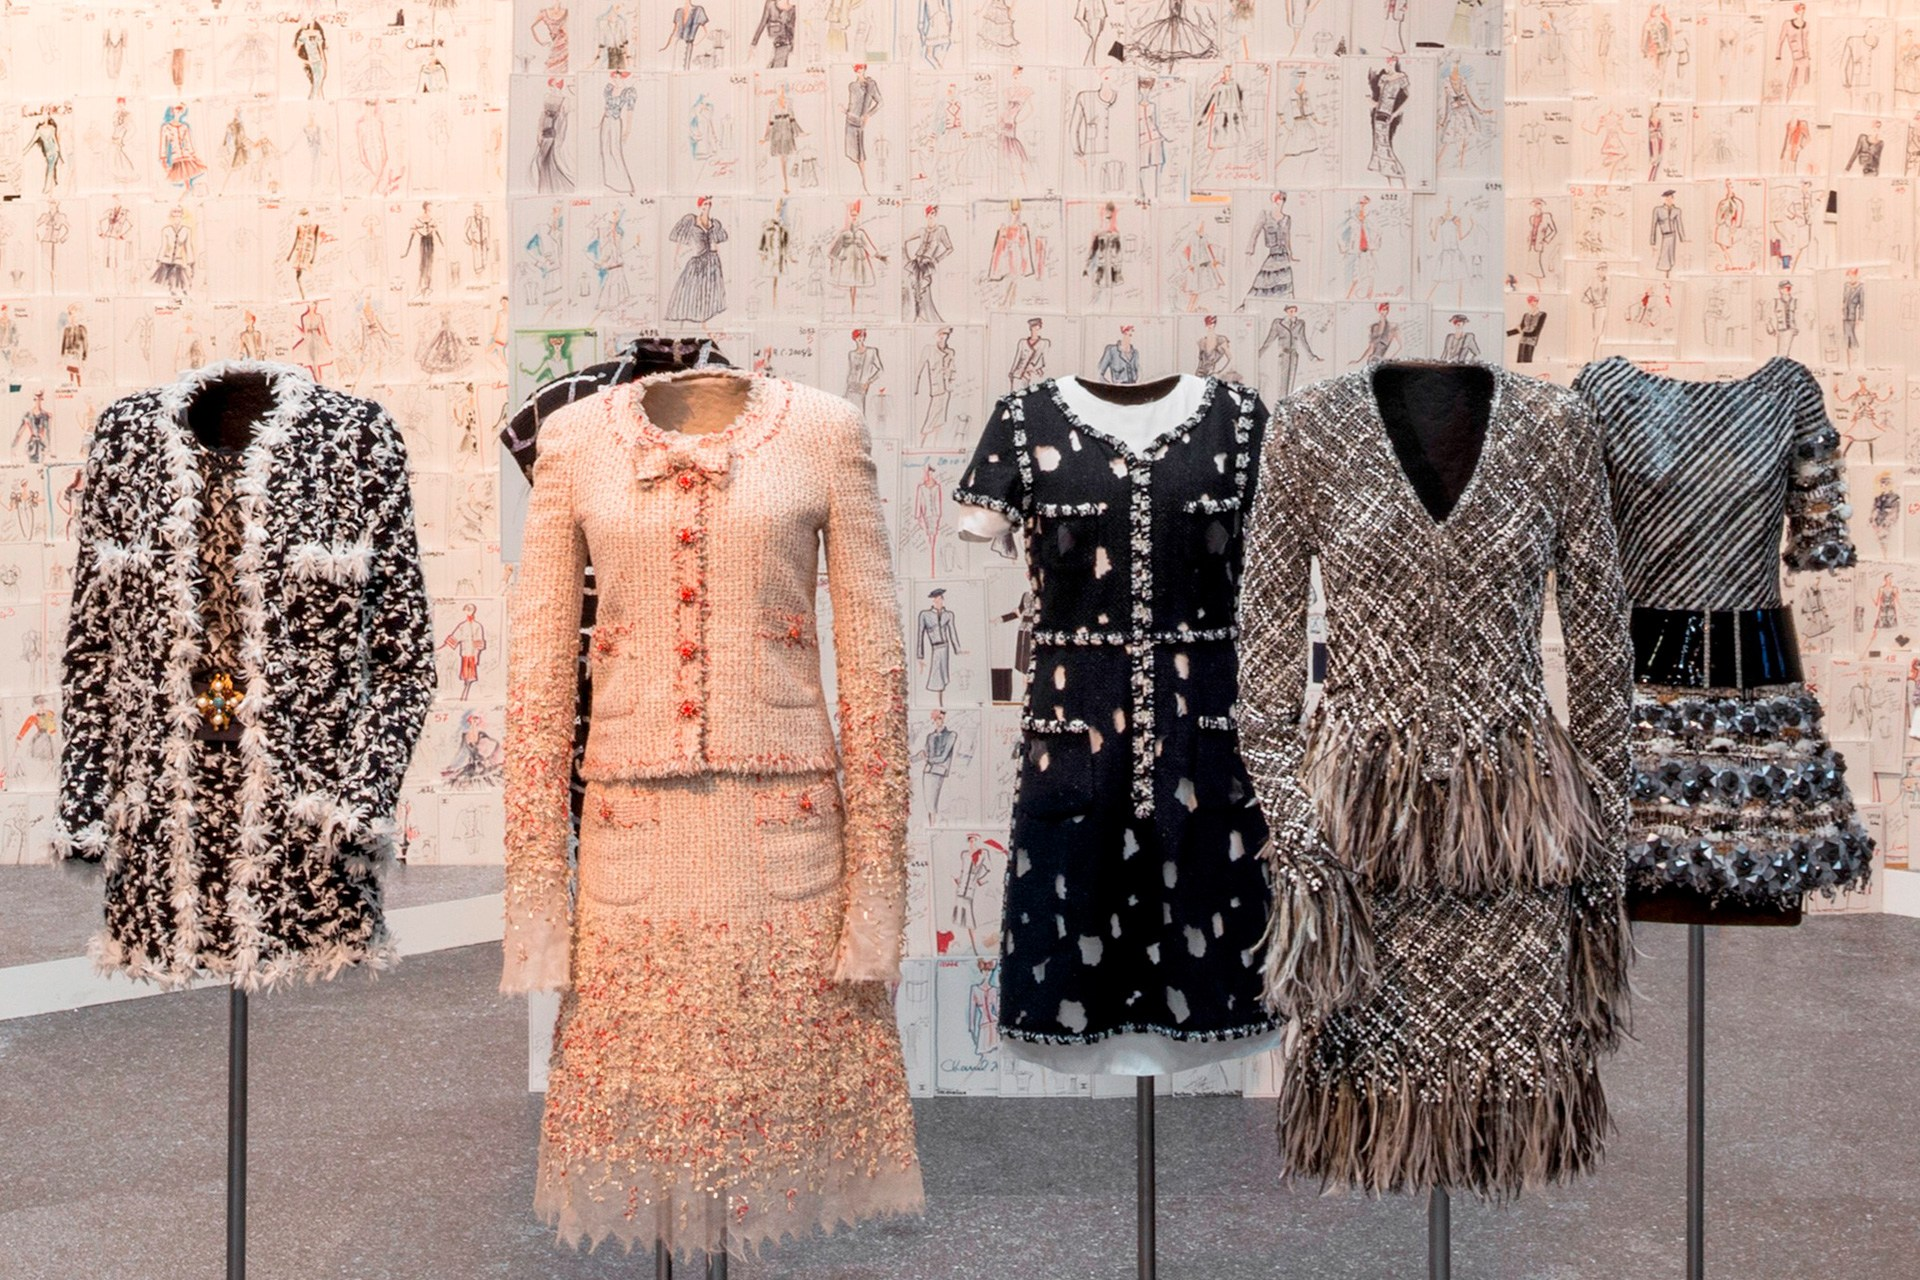 17-Reinvention-of-Tweed-from-weave-to-embroidery-CREDIT-David-Ertl